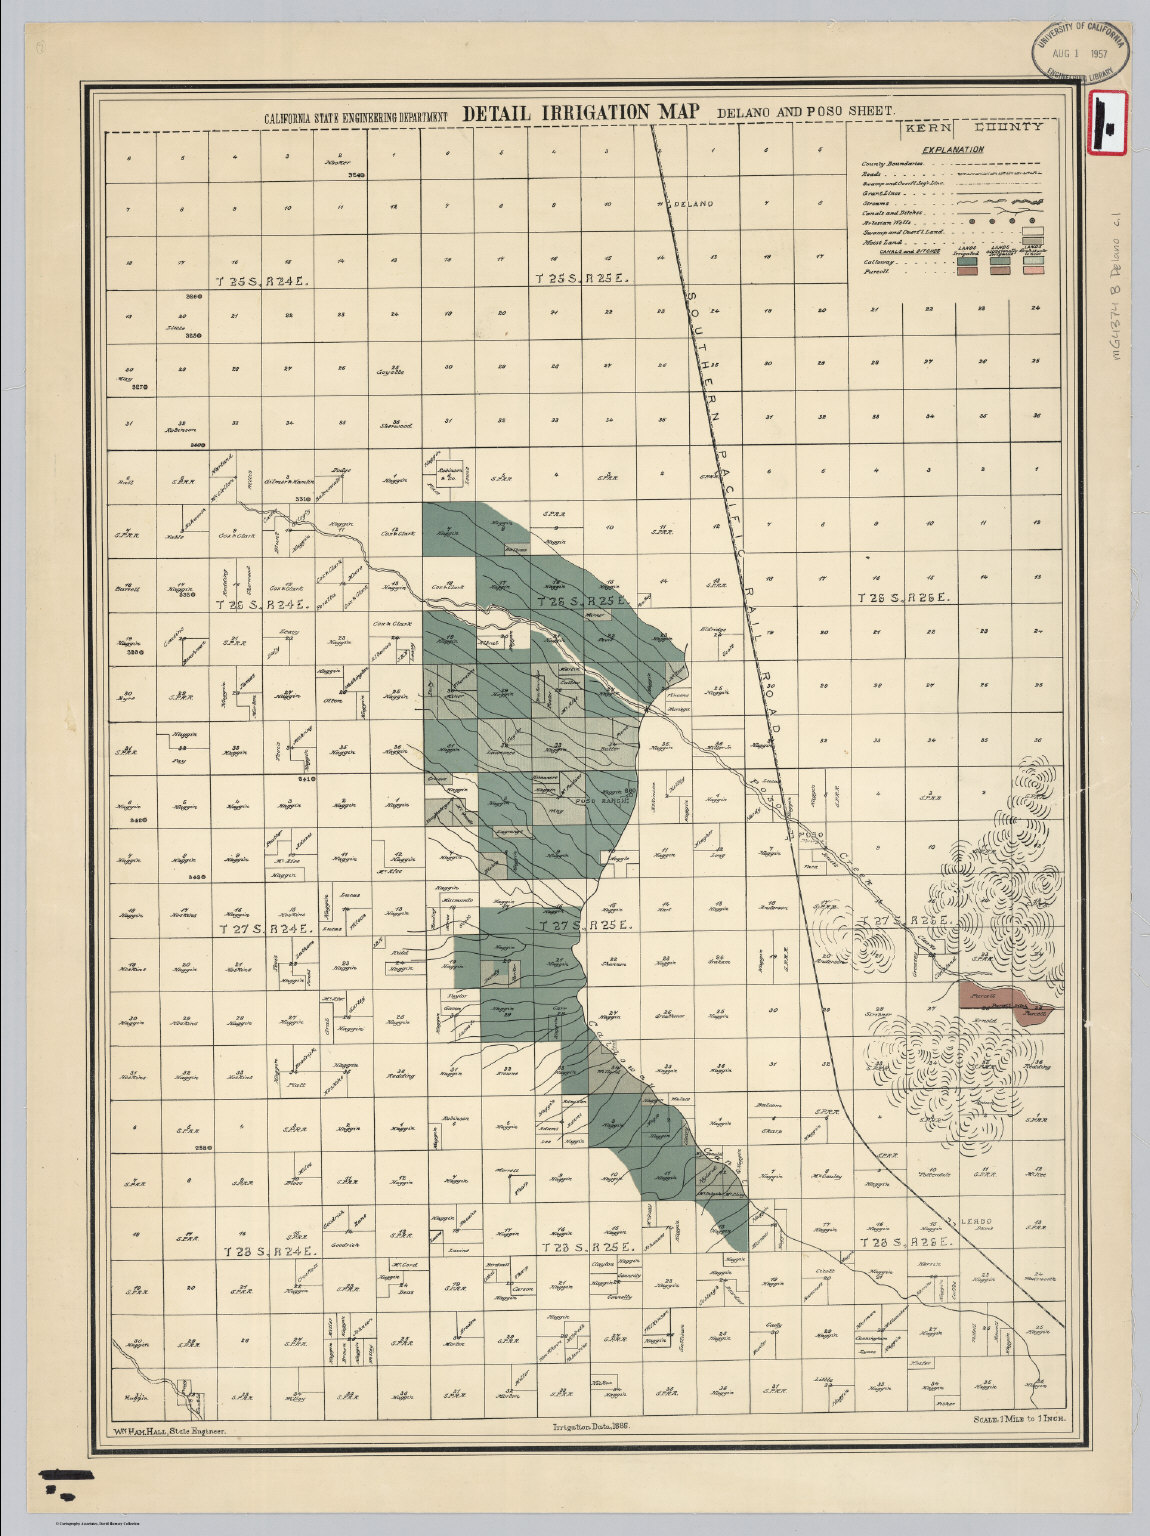 Delano and Poso Sheet. Detail Irrigation Map.